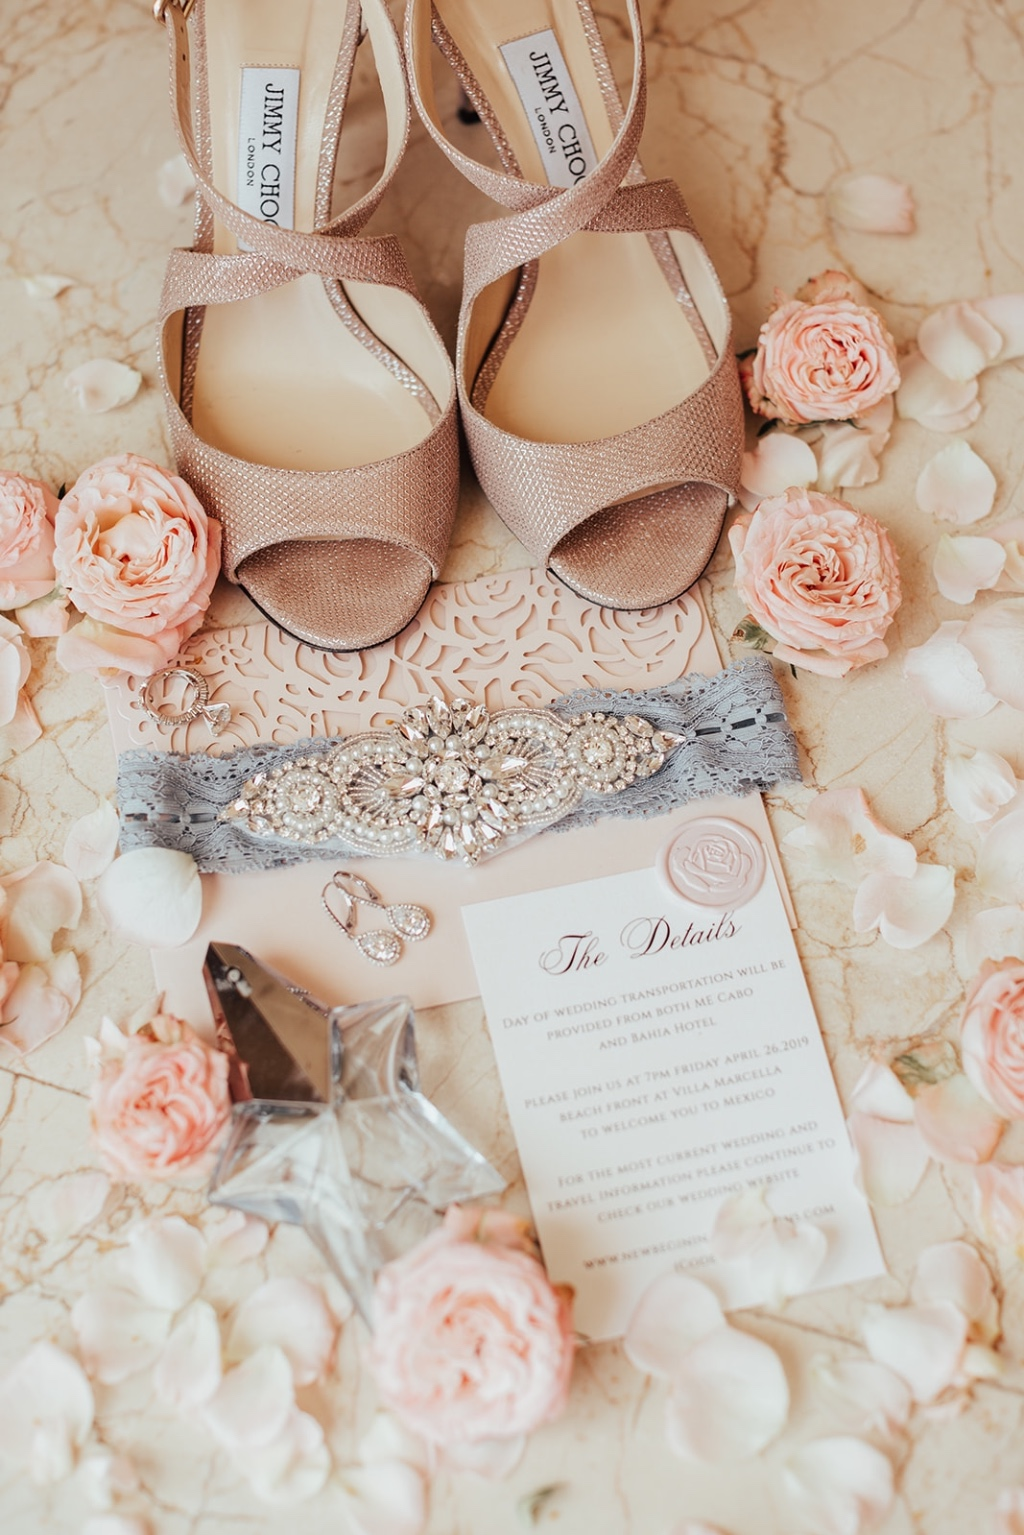 Bridal details for a magic beach wedding in Cabo